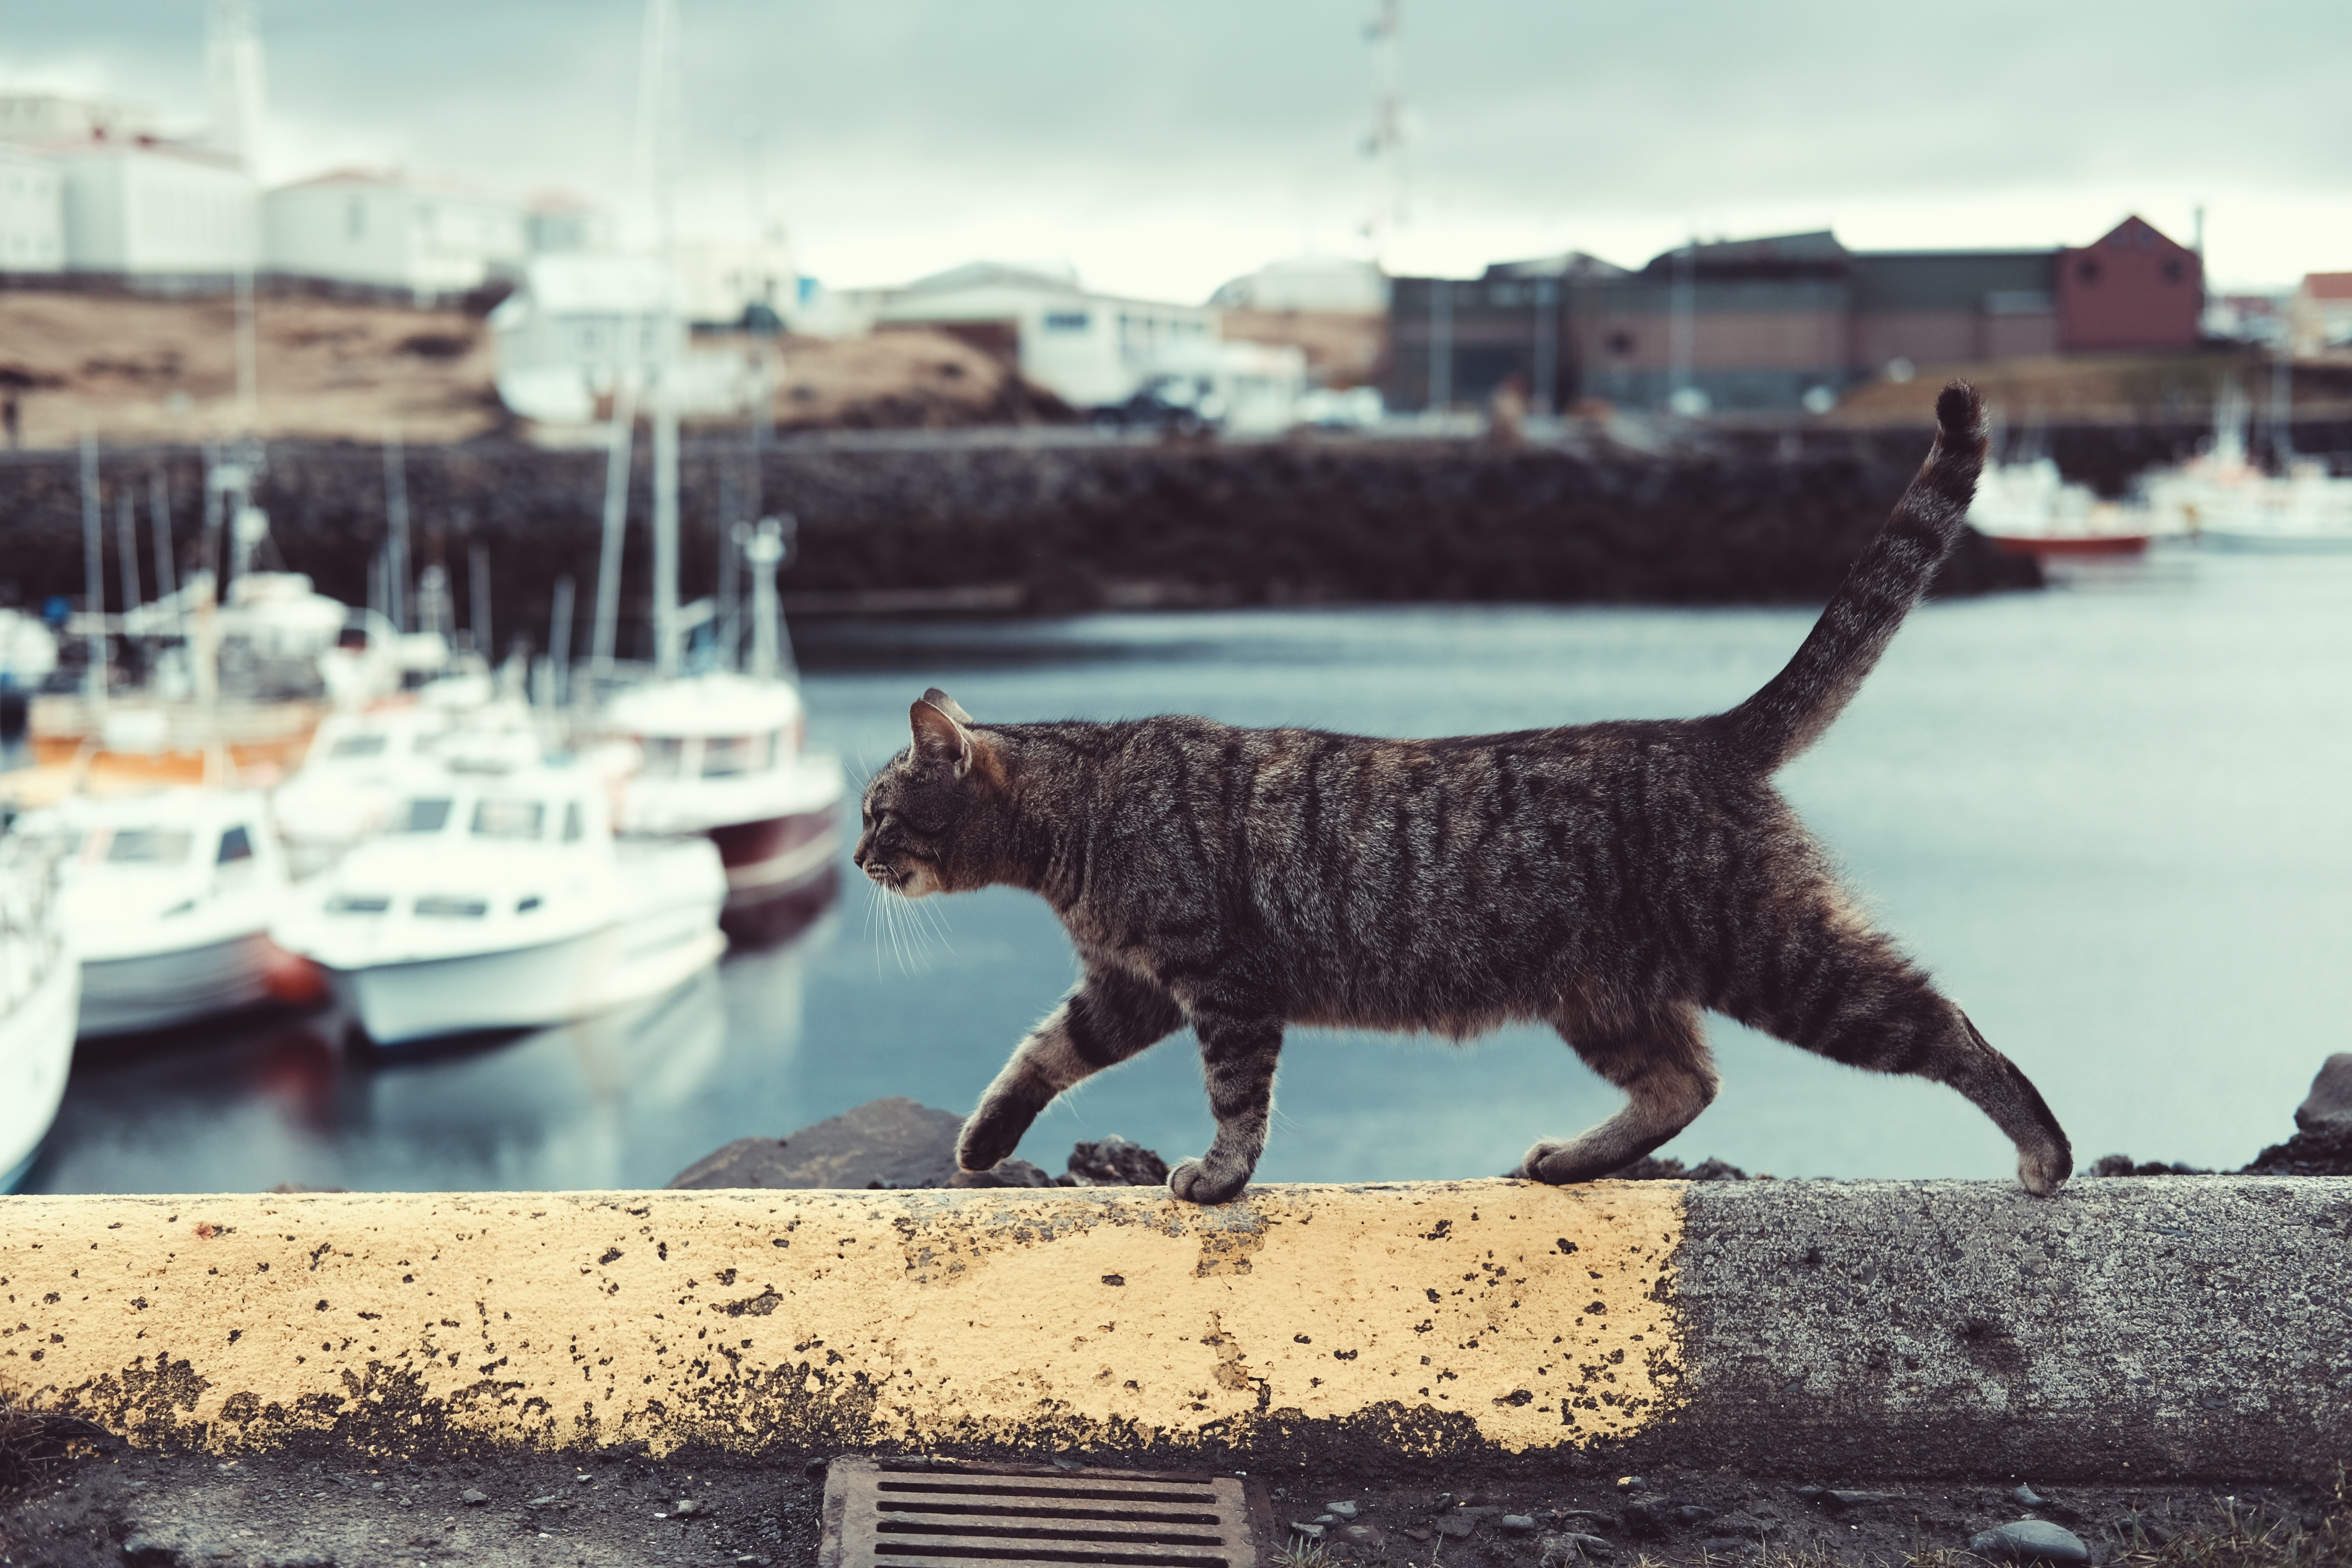 A tabby cat walking along a ledge over a harbor